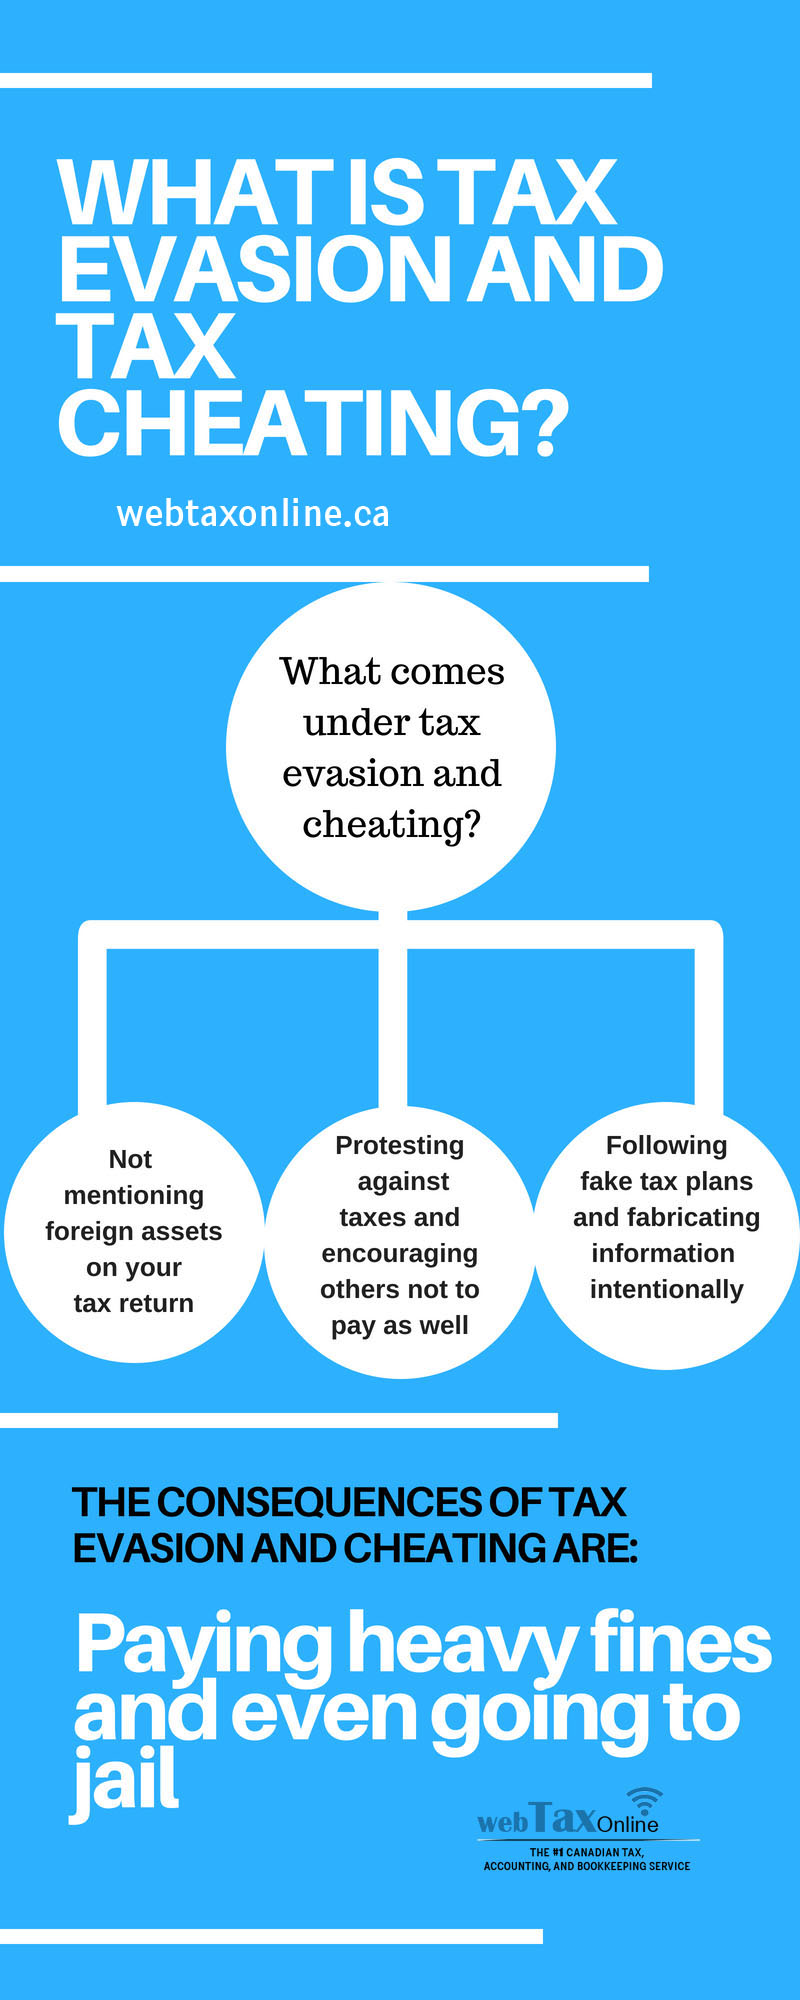 what is tax cheating in Canada